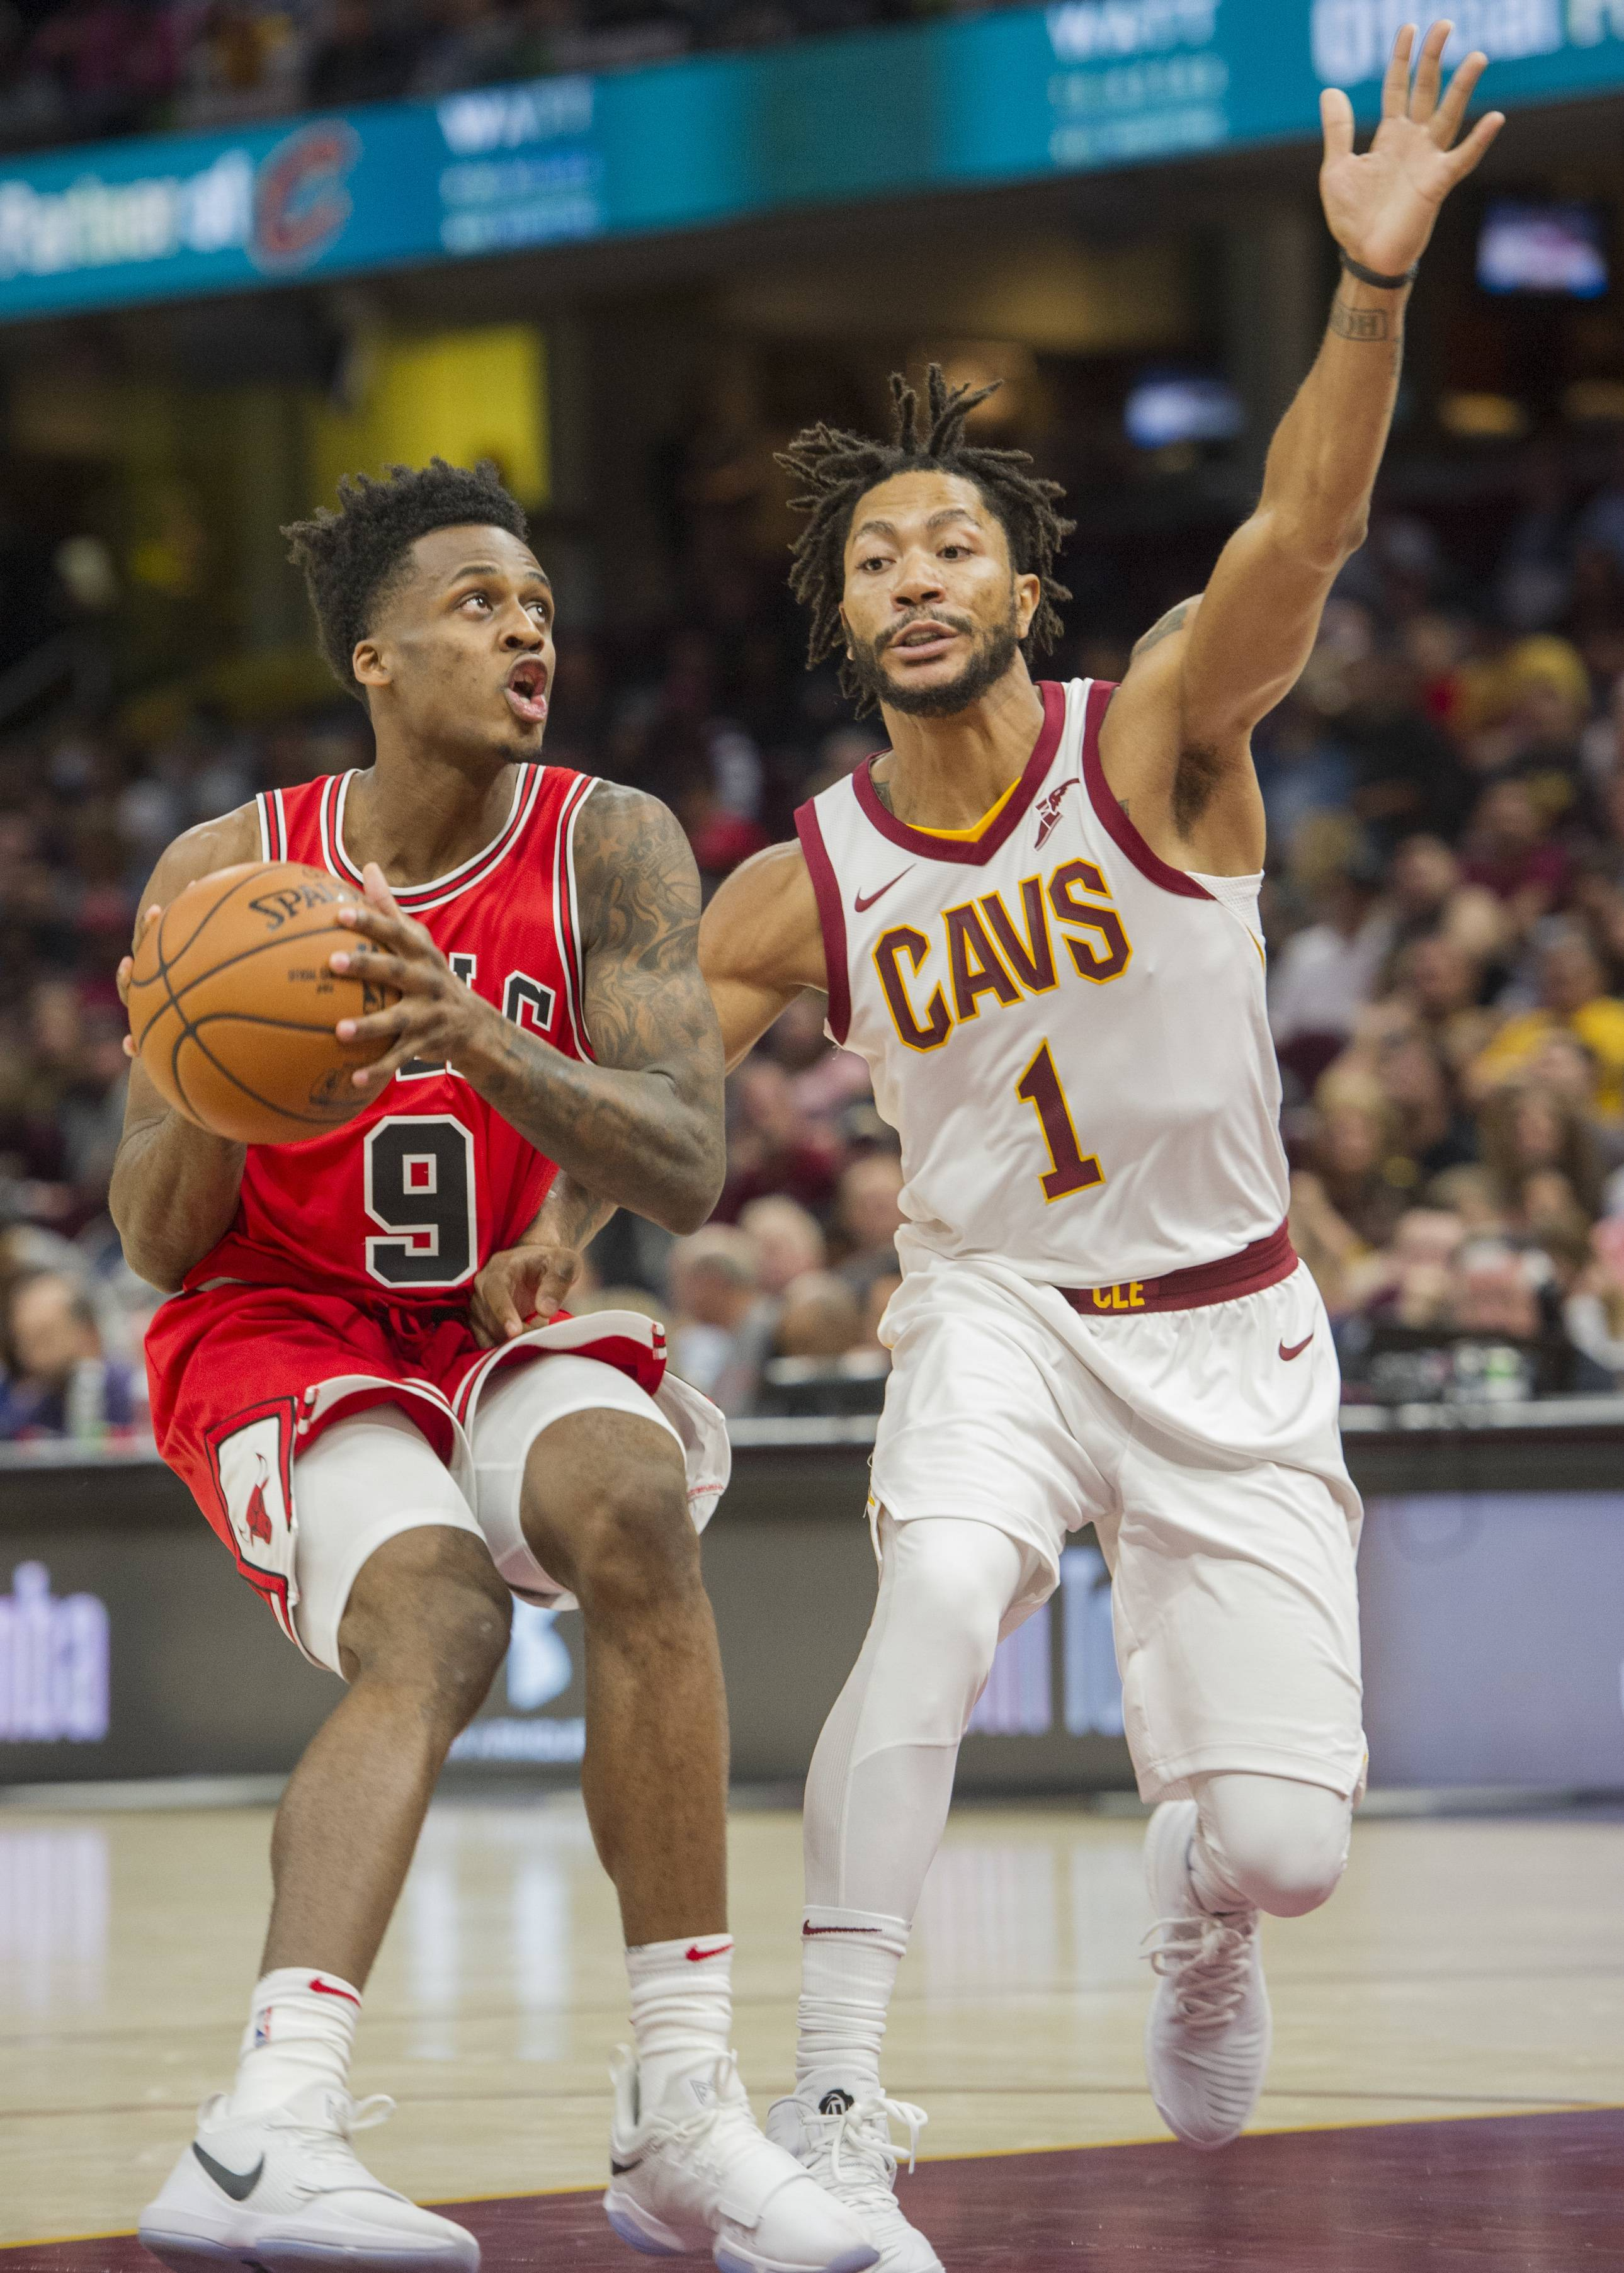 Summer league standout Antonio Blakeney is set to lead the Windy City Bulls into second season. The 6-foot-4 shooting guard was the first player signed by the Bulls to a two-way contract and figures to be one of the featured players when the Windy City Bulls begin their season in Hoffman Estates on Saturday.